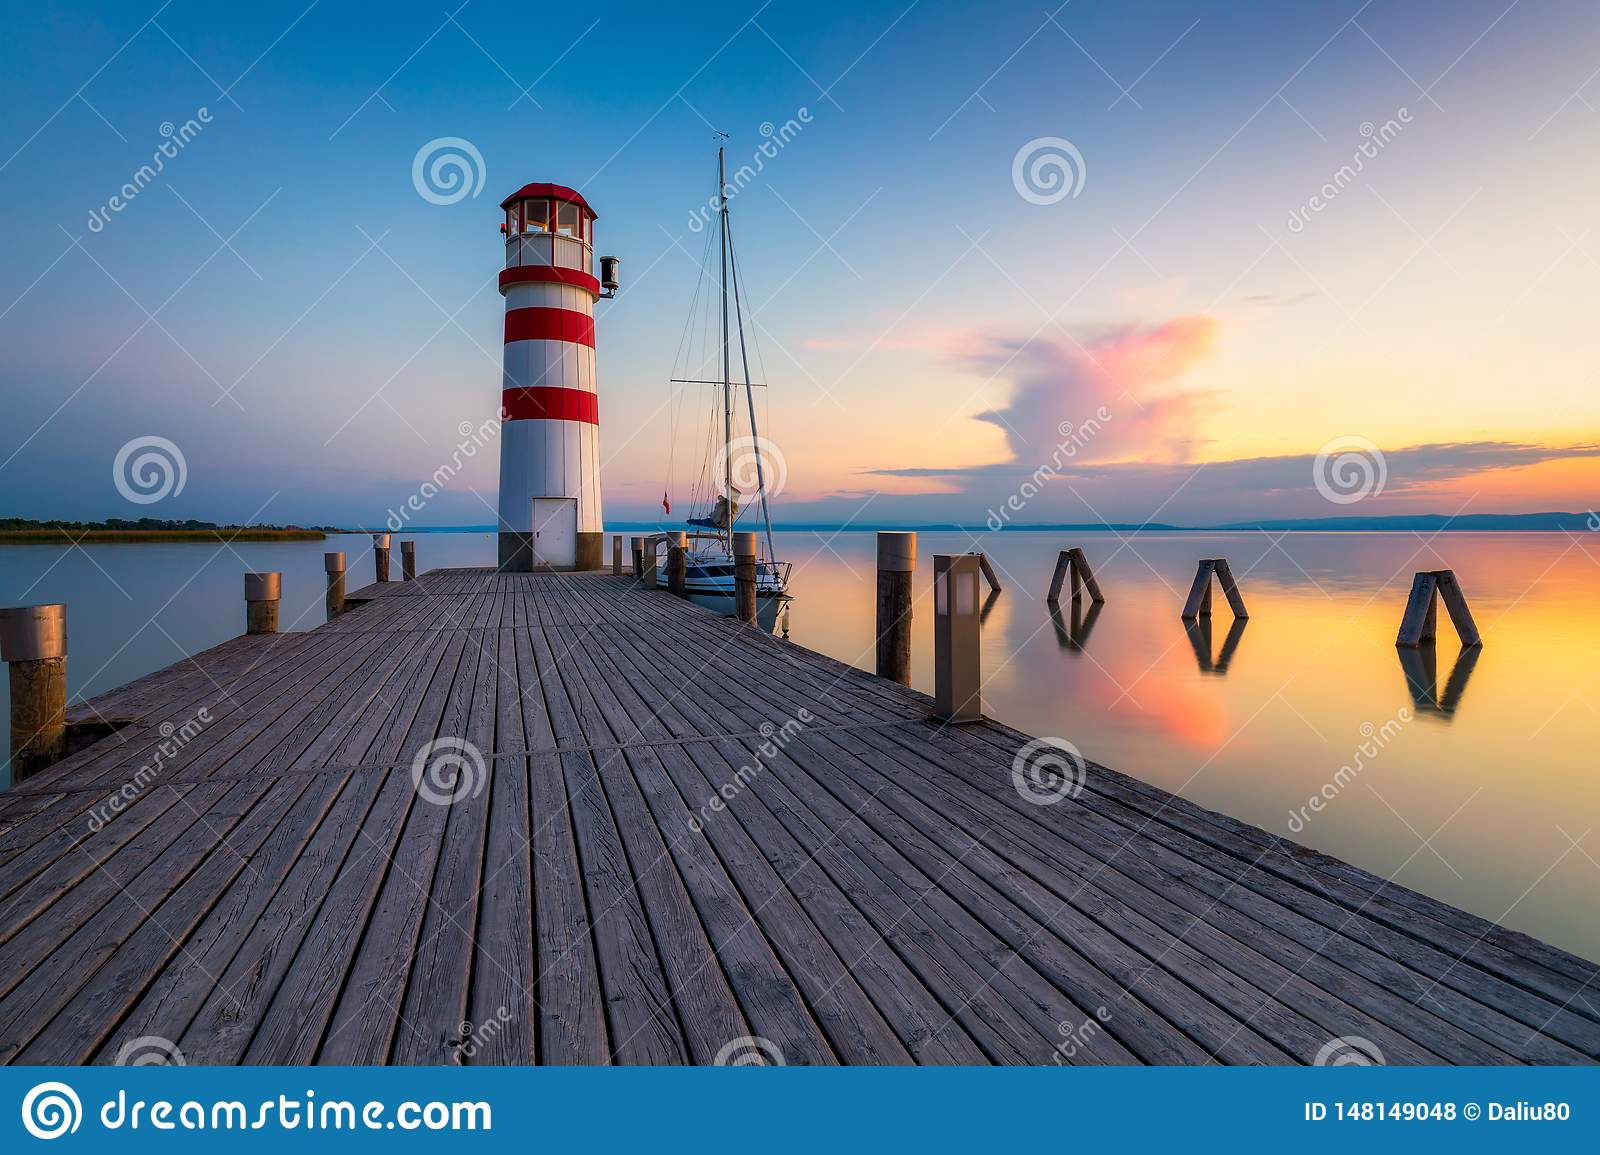 Lighthouse at Lake Neusiedl, Podersdorf am See, Burgenland, Austria. Lighthouse at sunset in Austria. Wooden pier with lighthouse